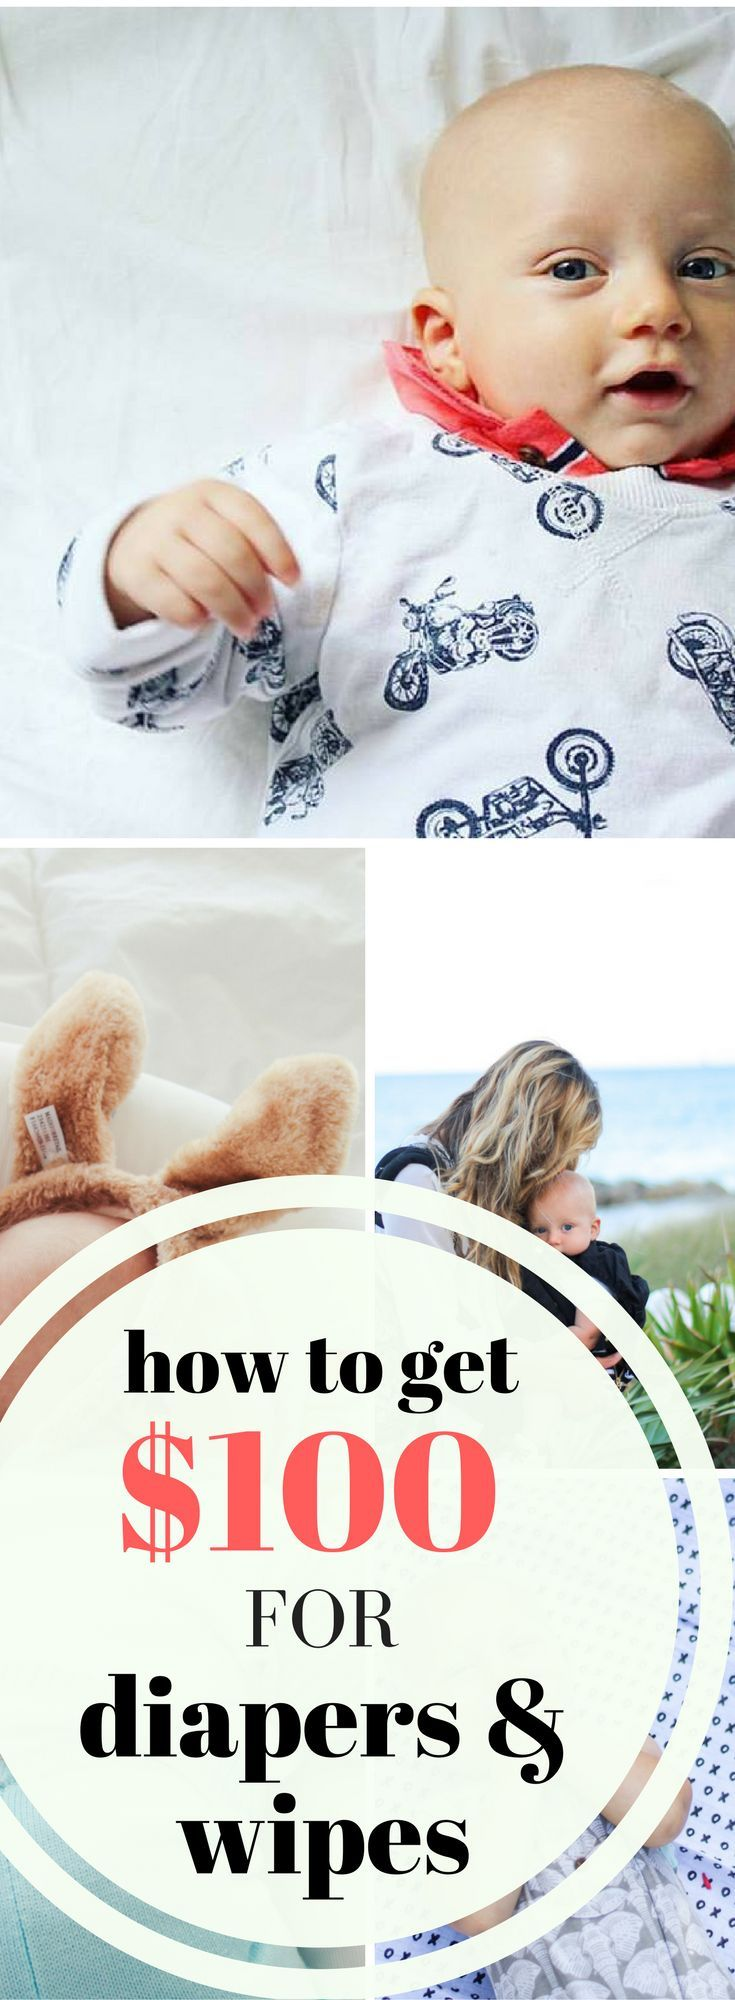 If you are expecting a baby, here's how you can get $100 towards diapers and wipes, as well as the items I ended up buying, when I wish I put them on my registry!